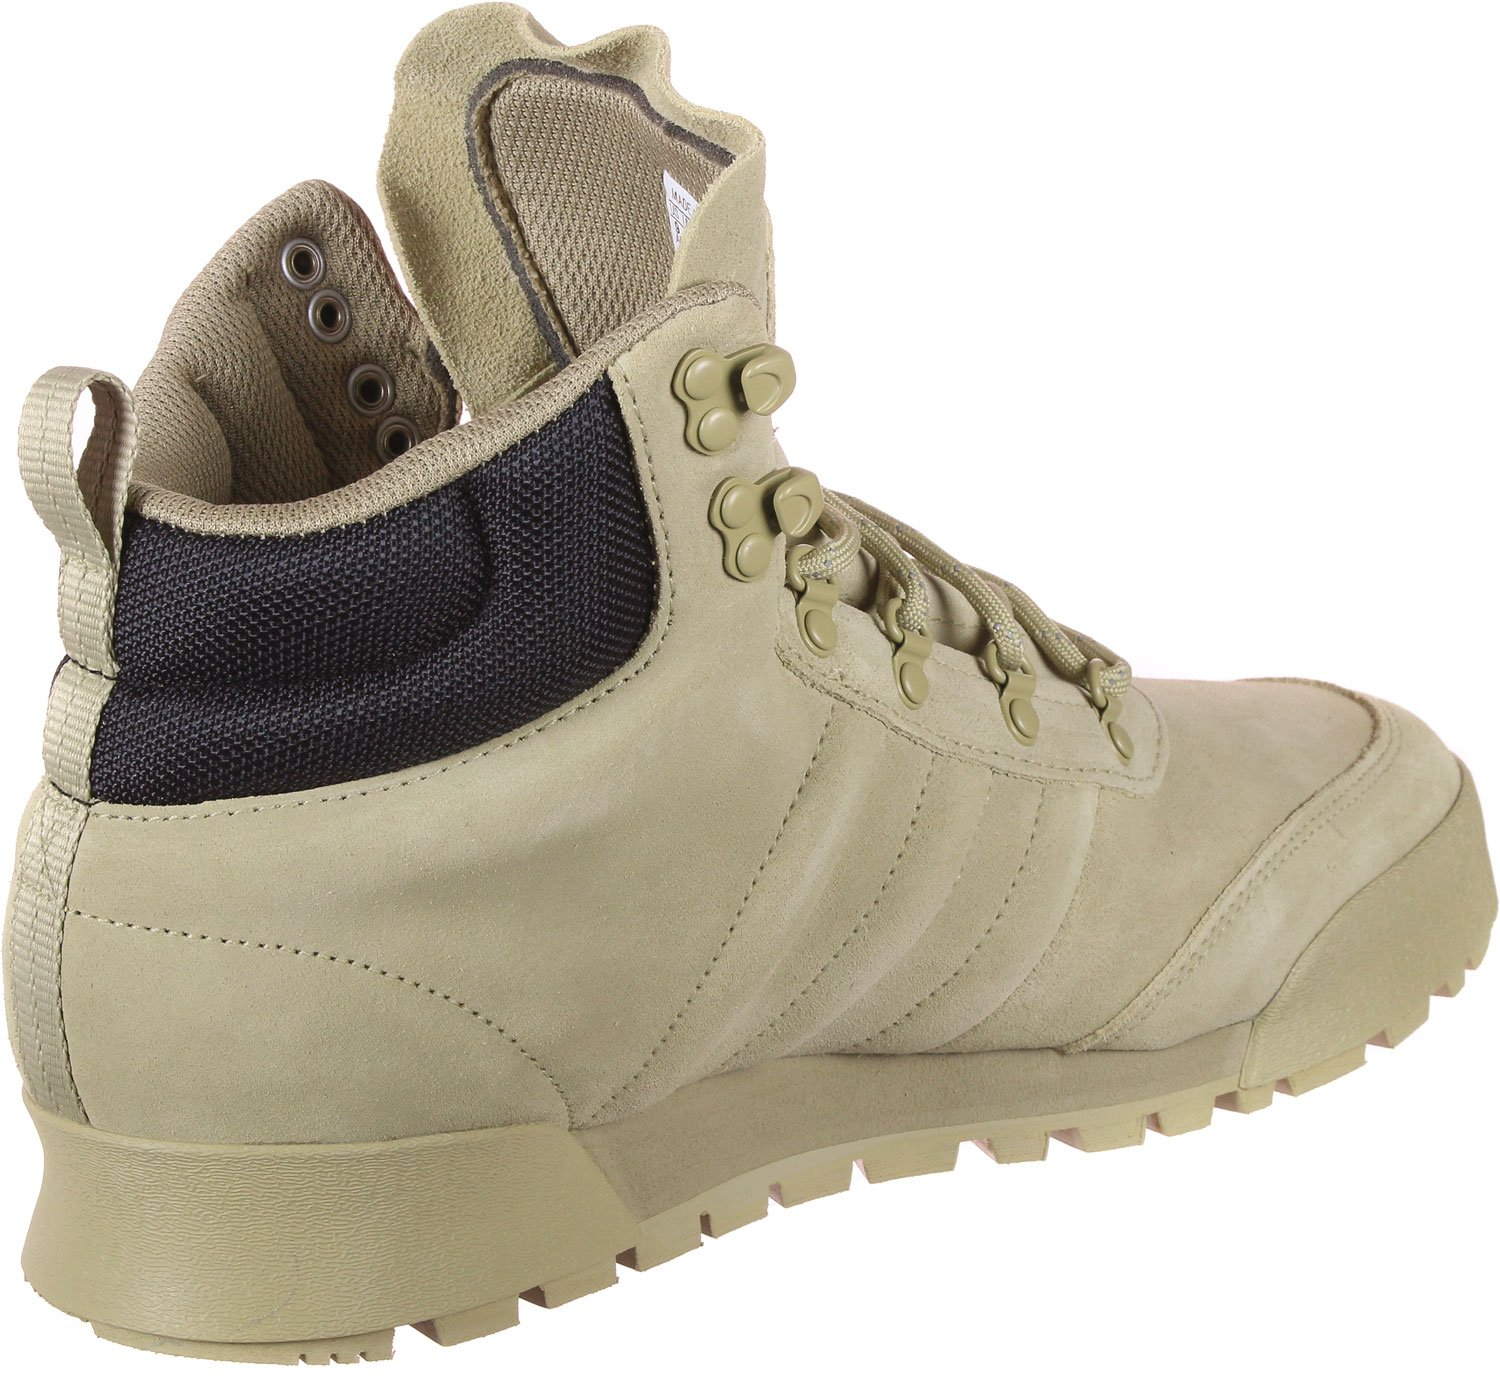 Adidas Jake Boot B07CZ8MKRH 2.0 Jake Zapatillas Dorado Jake 2.0 de b2c988